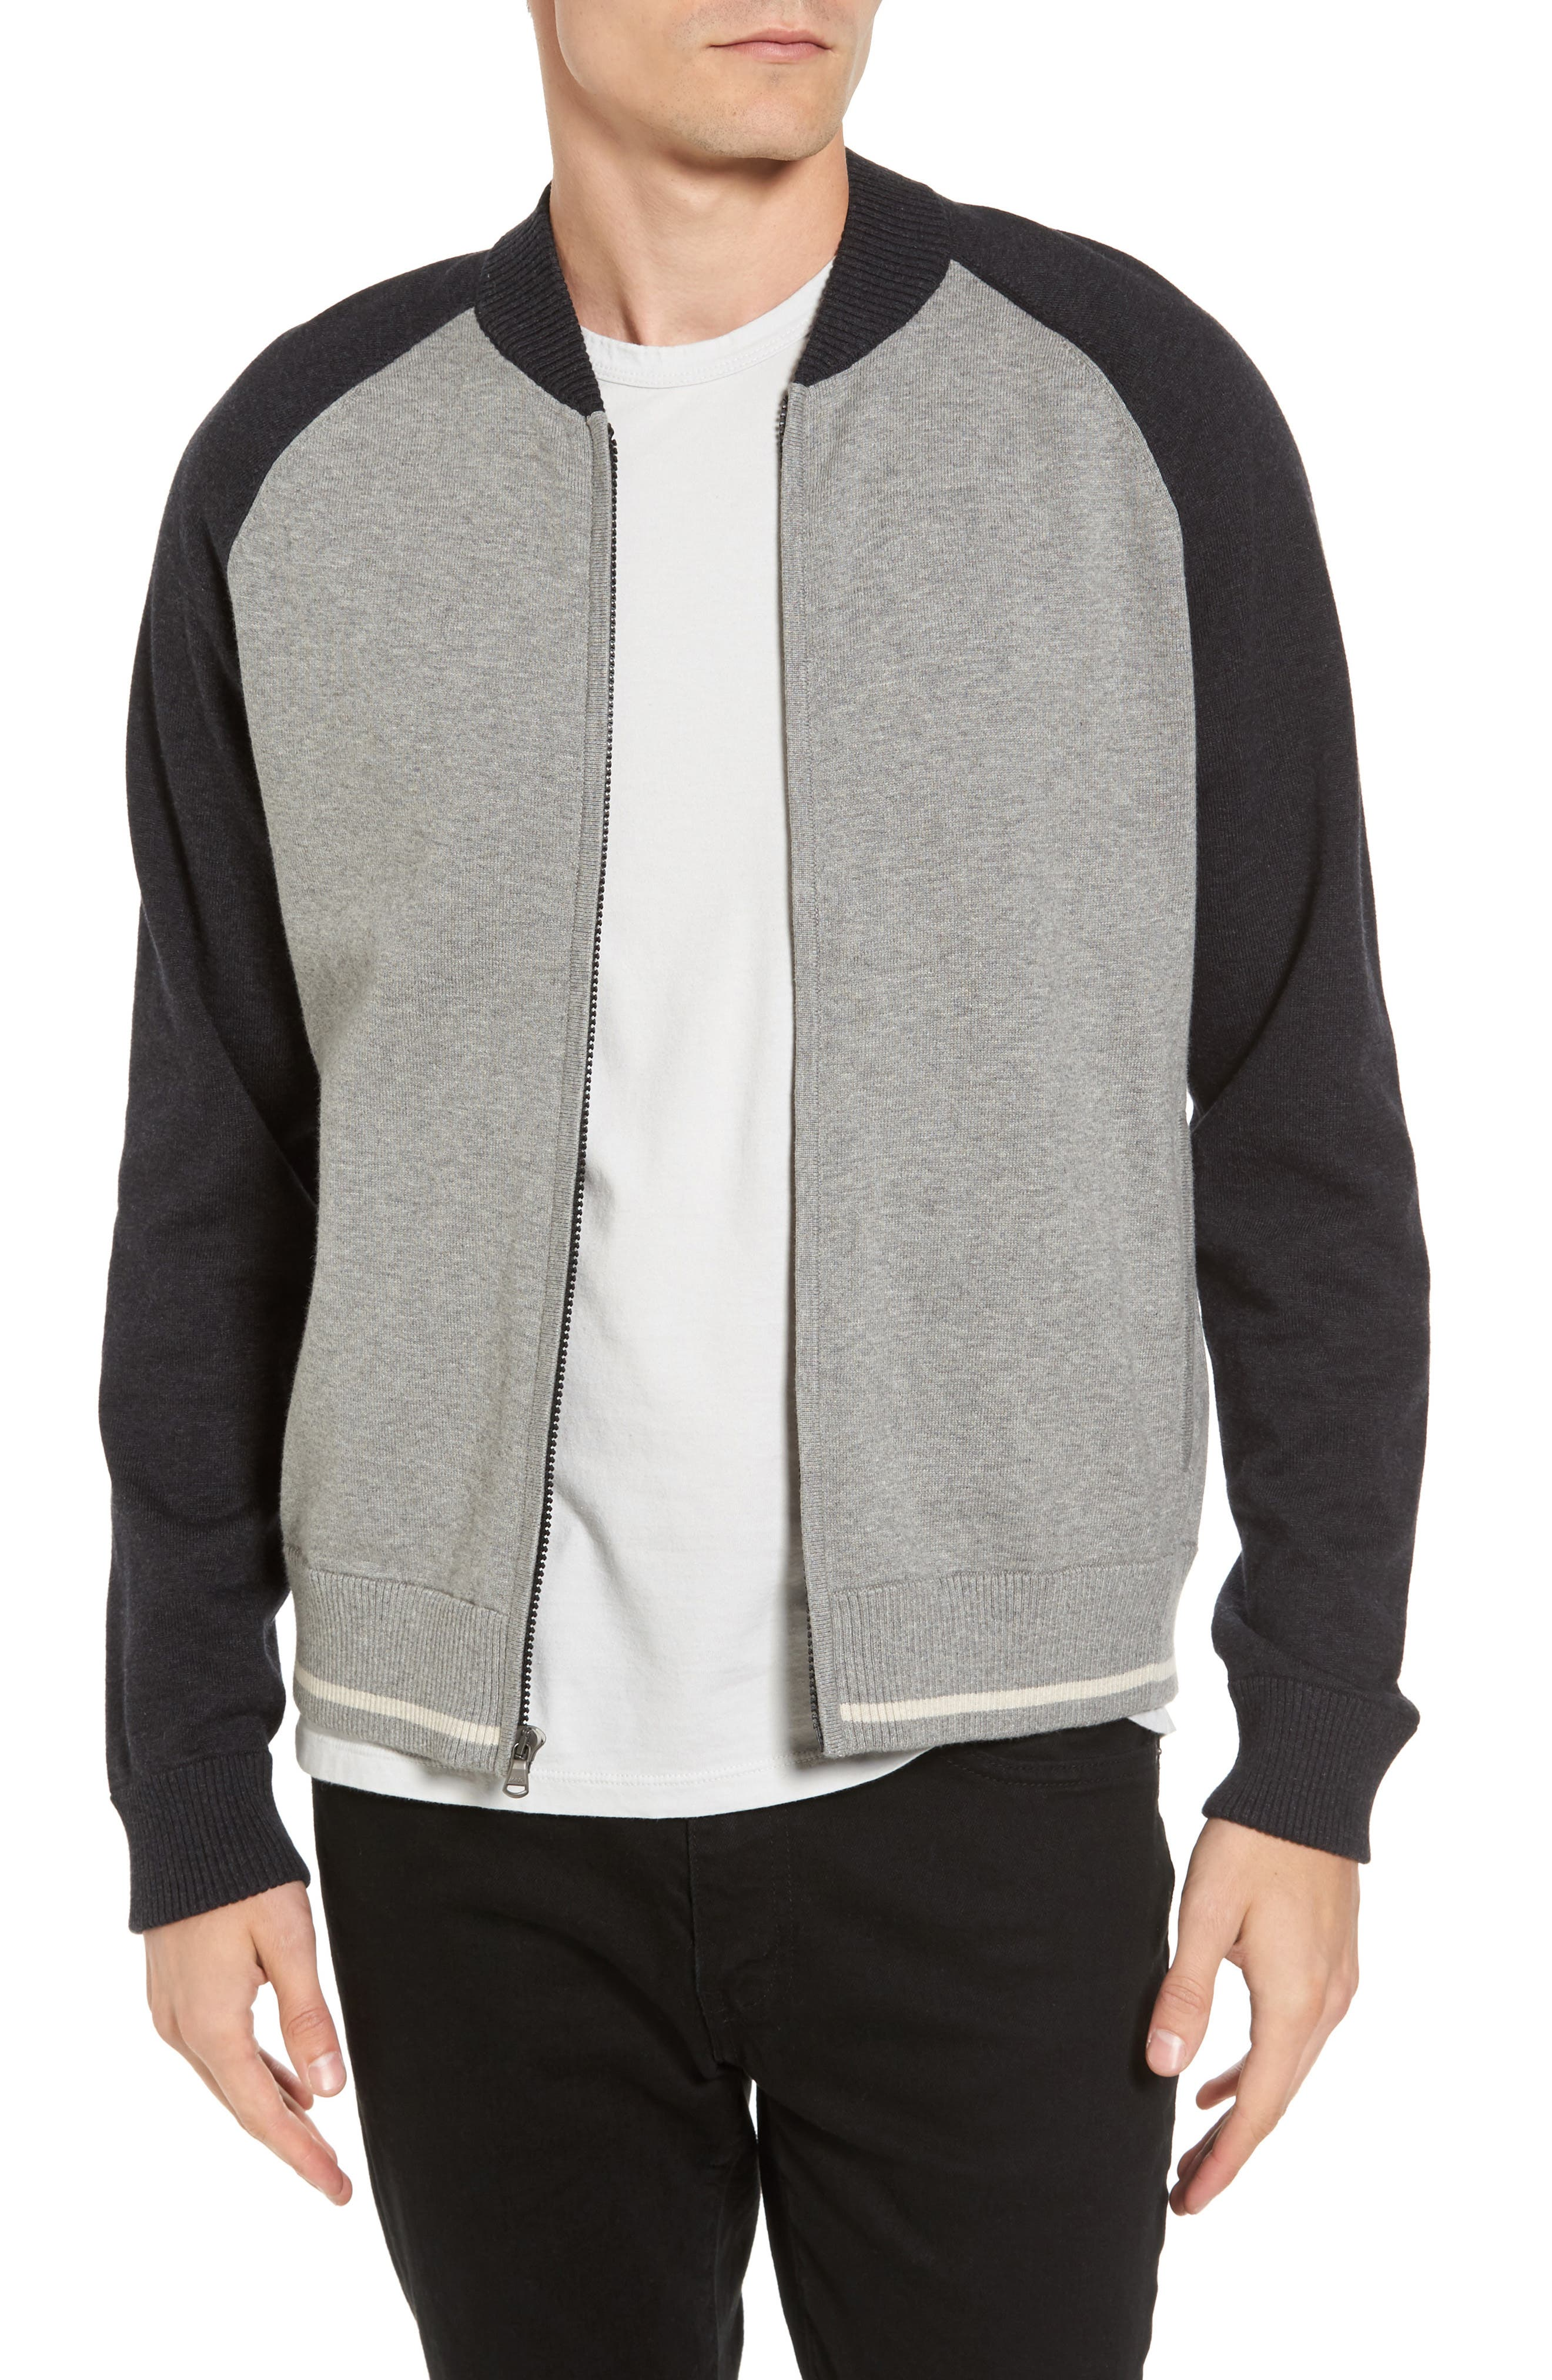 James Perse Colorblock Knit Track Jacket